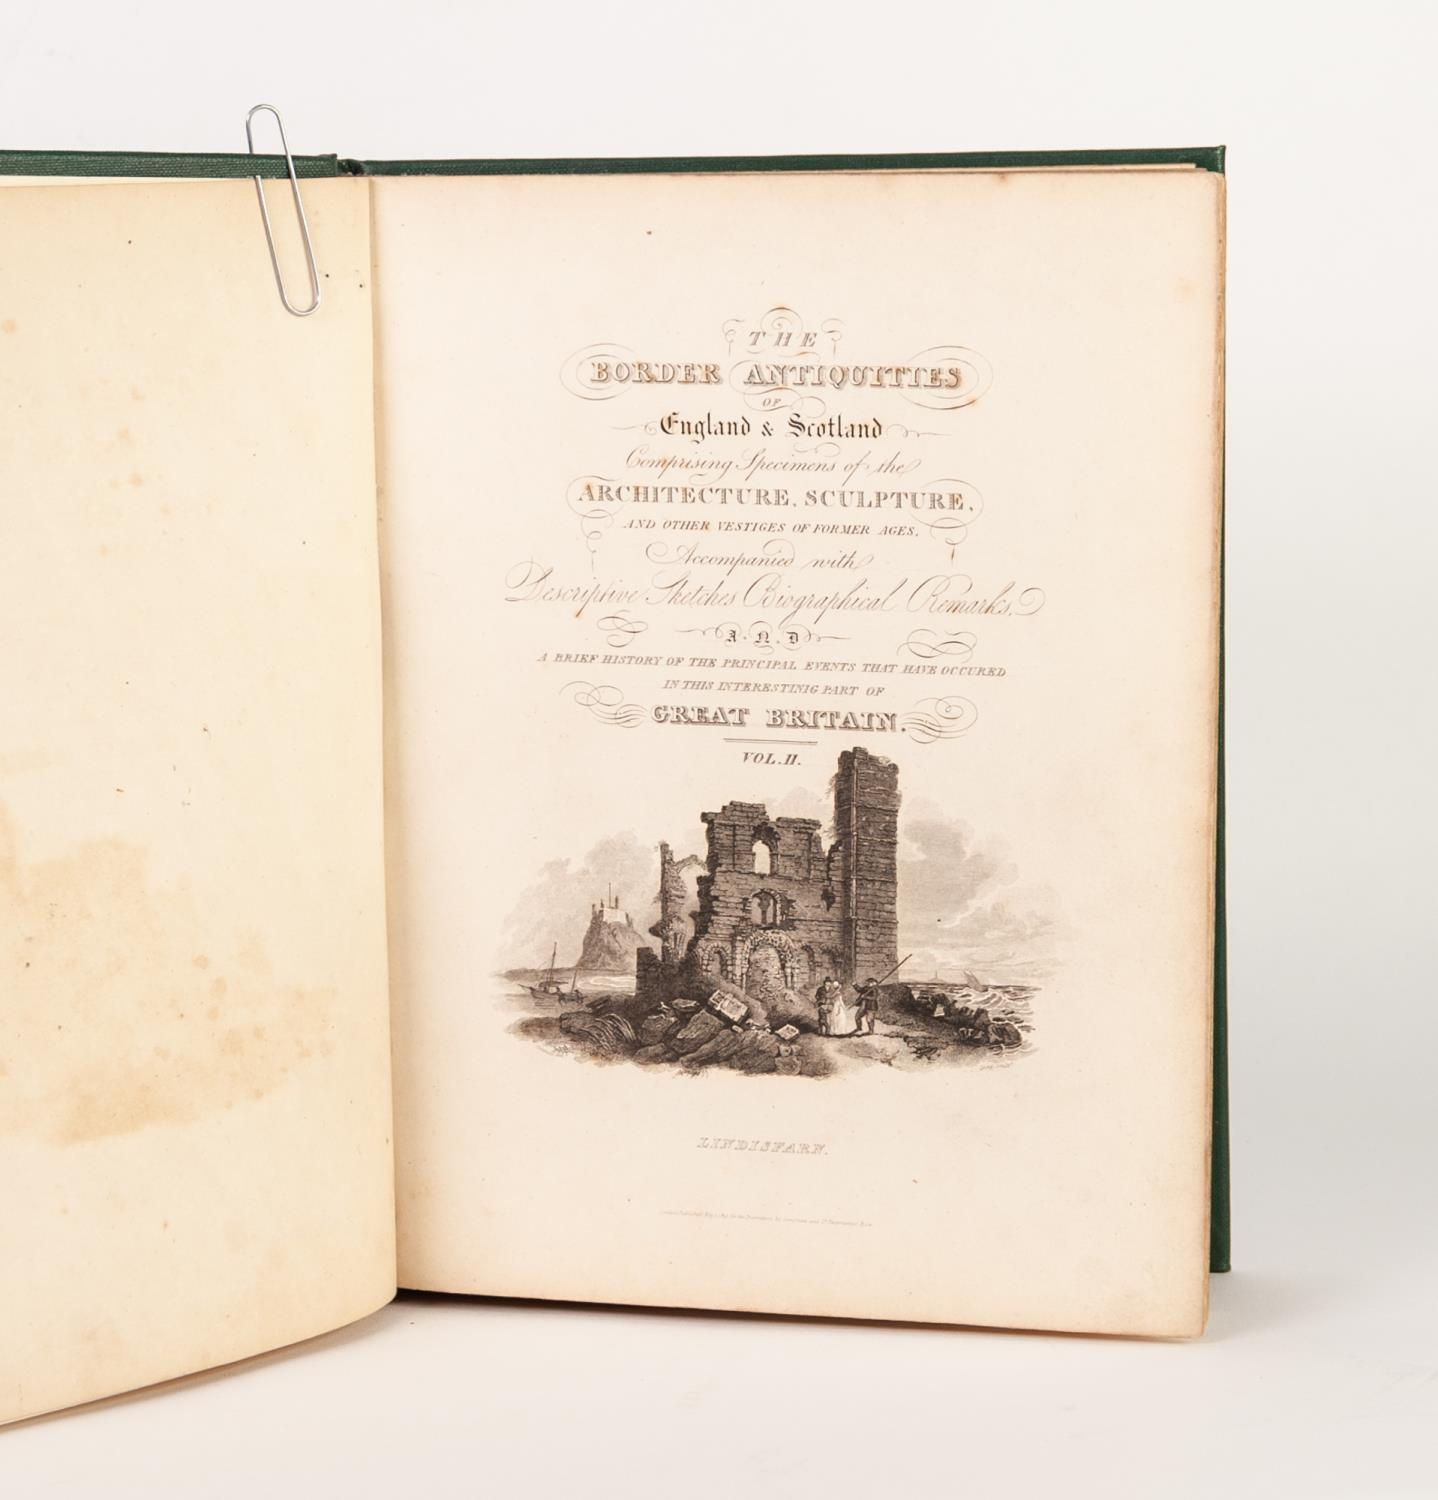 Lot 148 - Walter Scott- The Border Antiquities of England and Scotland, 2 vol, printed by Longman, Hurst, Rees